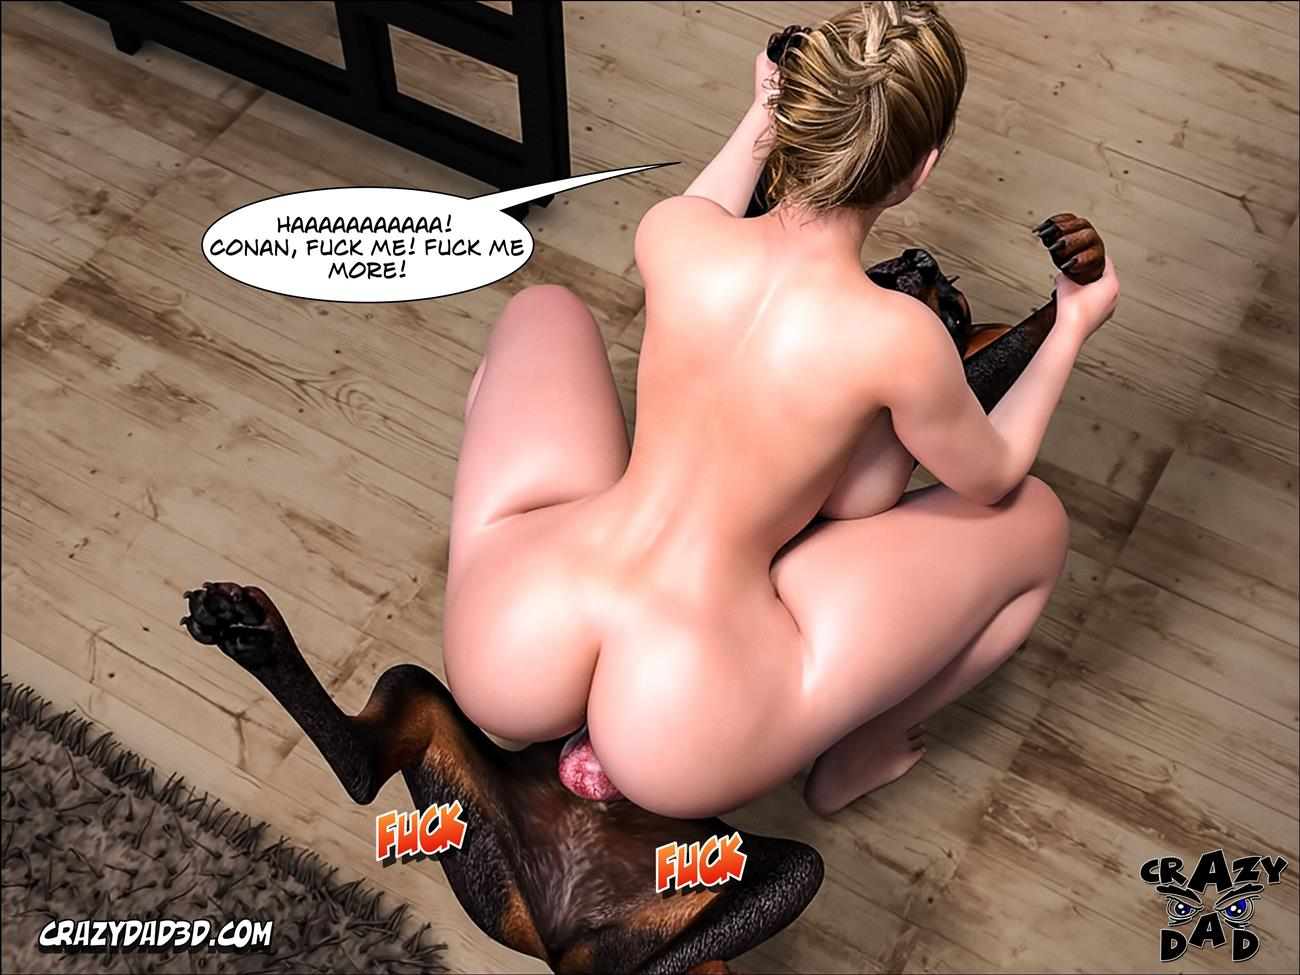 Father-in-Law at Home 12 [Crazy Dad 3D] - Foto 66